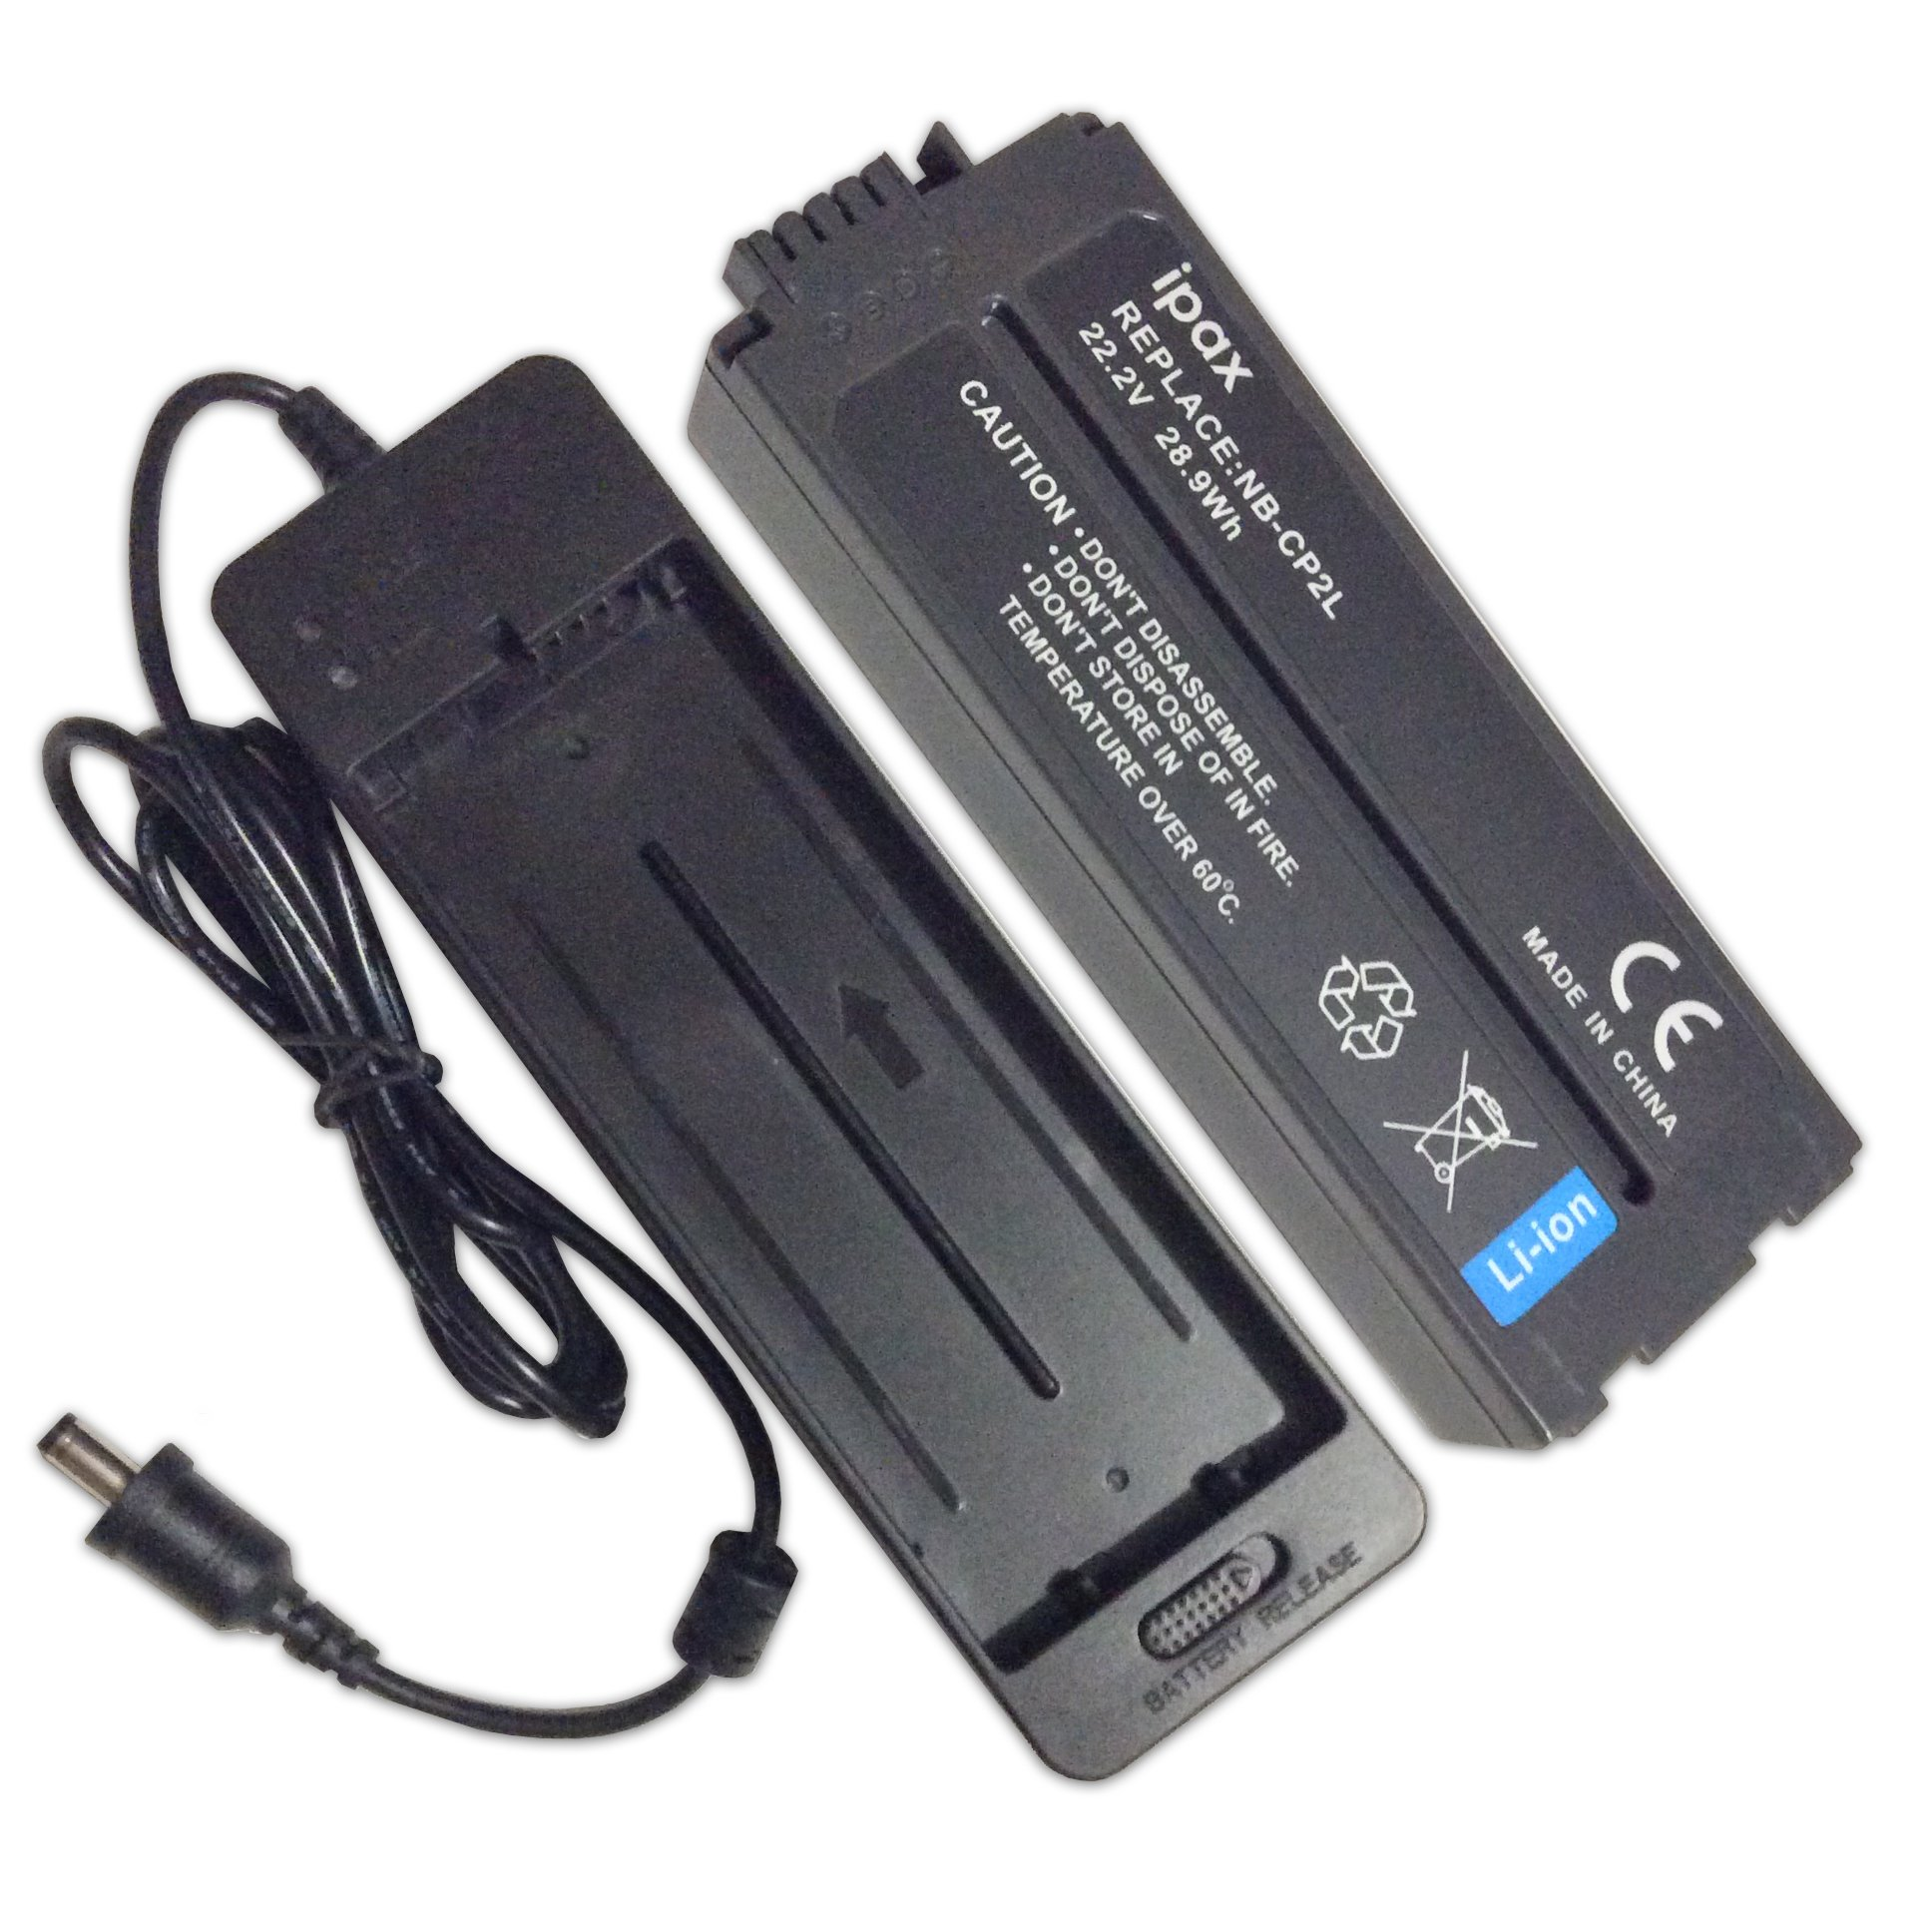 IPAX Battery and Charger for Canon Selphy Photo Printers NB-CP2L NB-CP2LH NB-CP1L CP200, CP300, CP330, CP510, CP600, CP710, CP730, CP770, CP780, CP790, CP800, CP900, CP910, CP1200,CP1300 with case